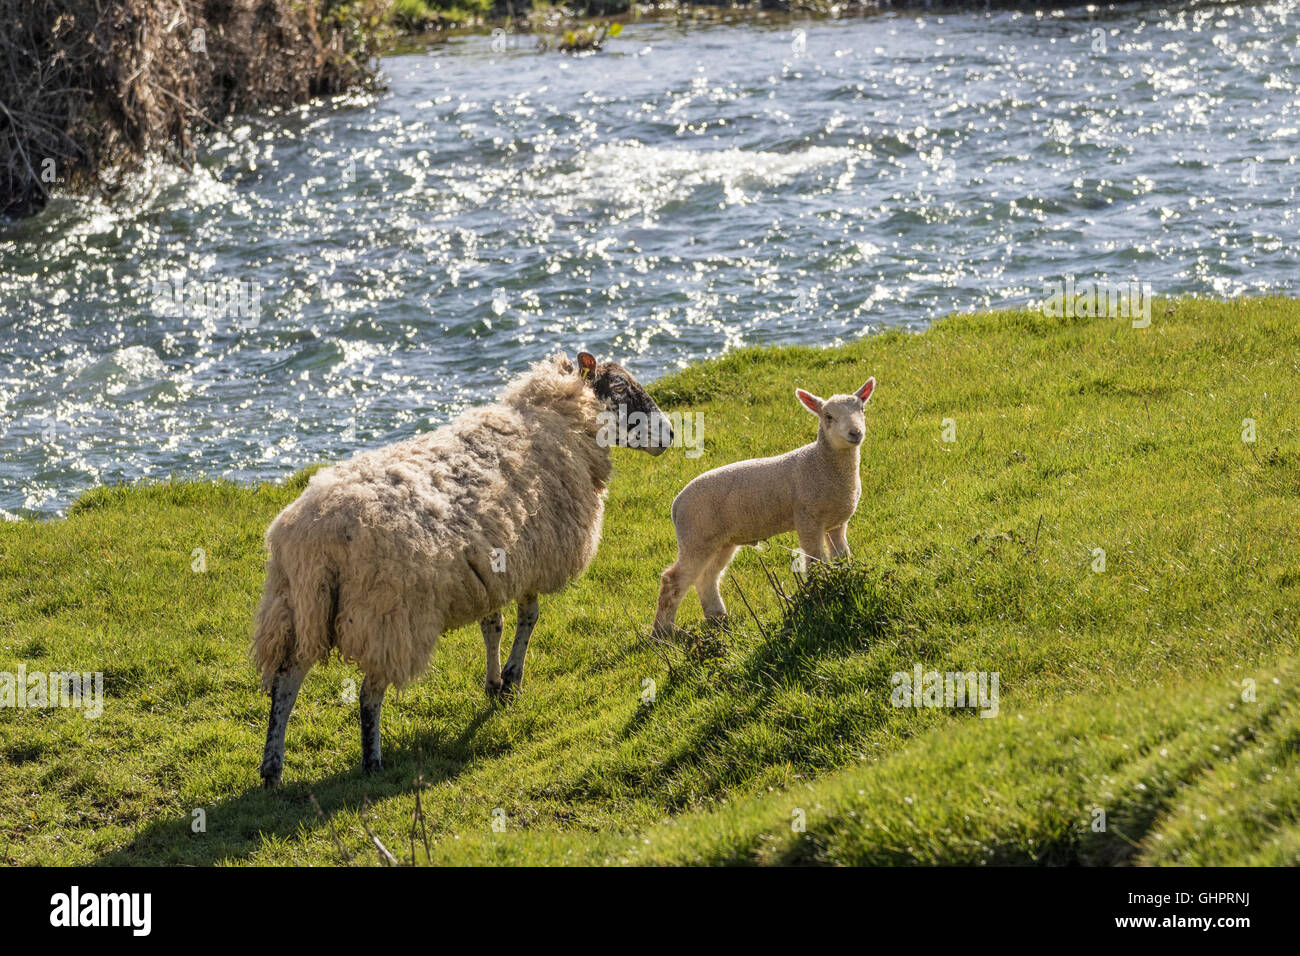 Ewe and lamb on the bank of a fast flowing river - Stock Image